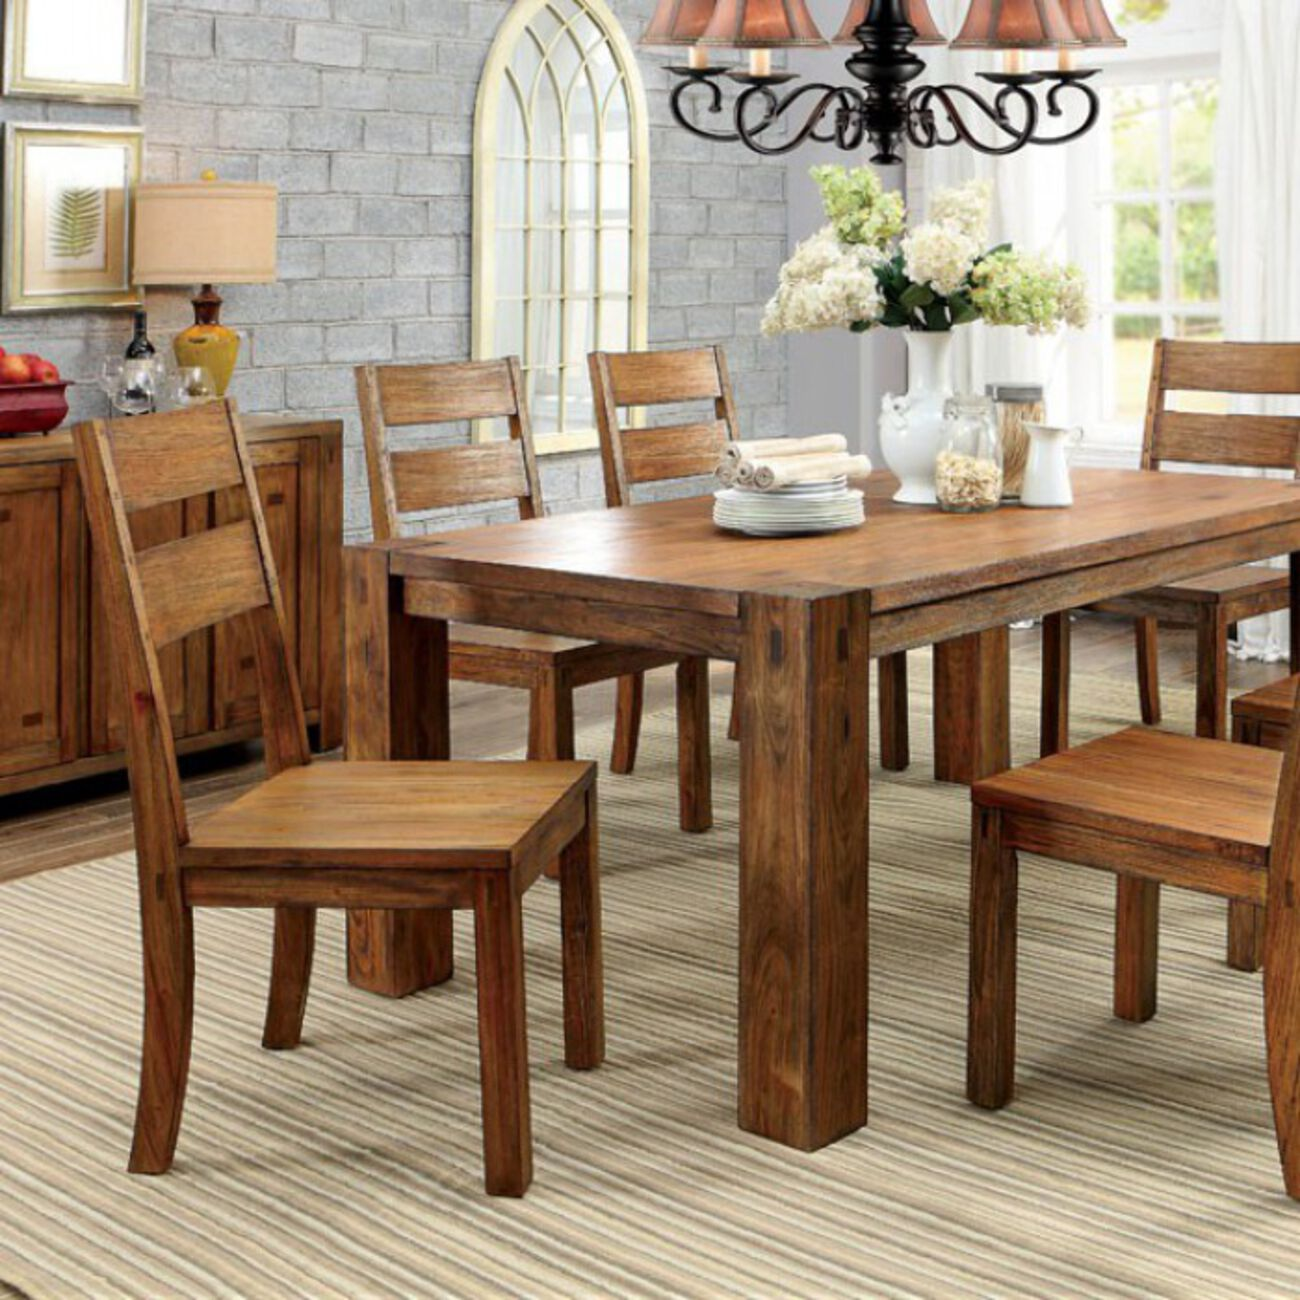 Frontier Transitional Style Dining Table, Dark Oak Finish